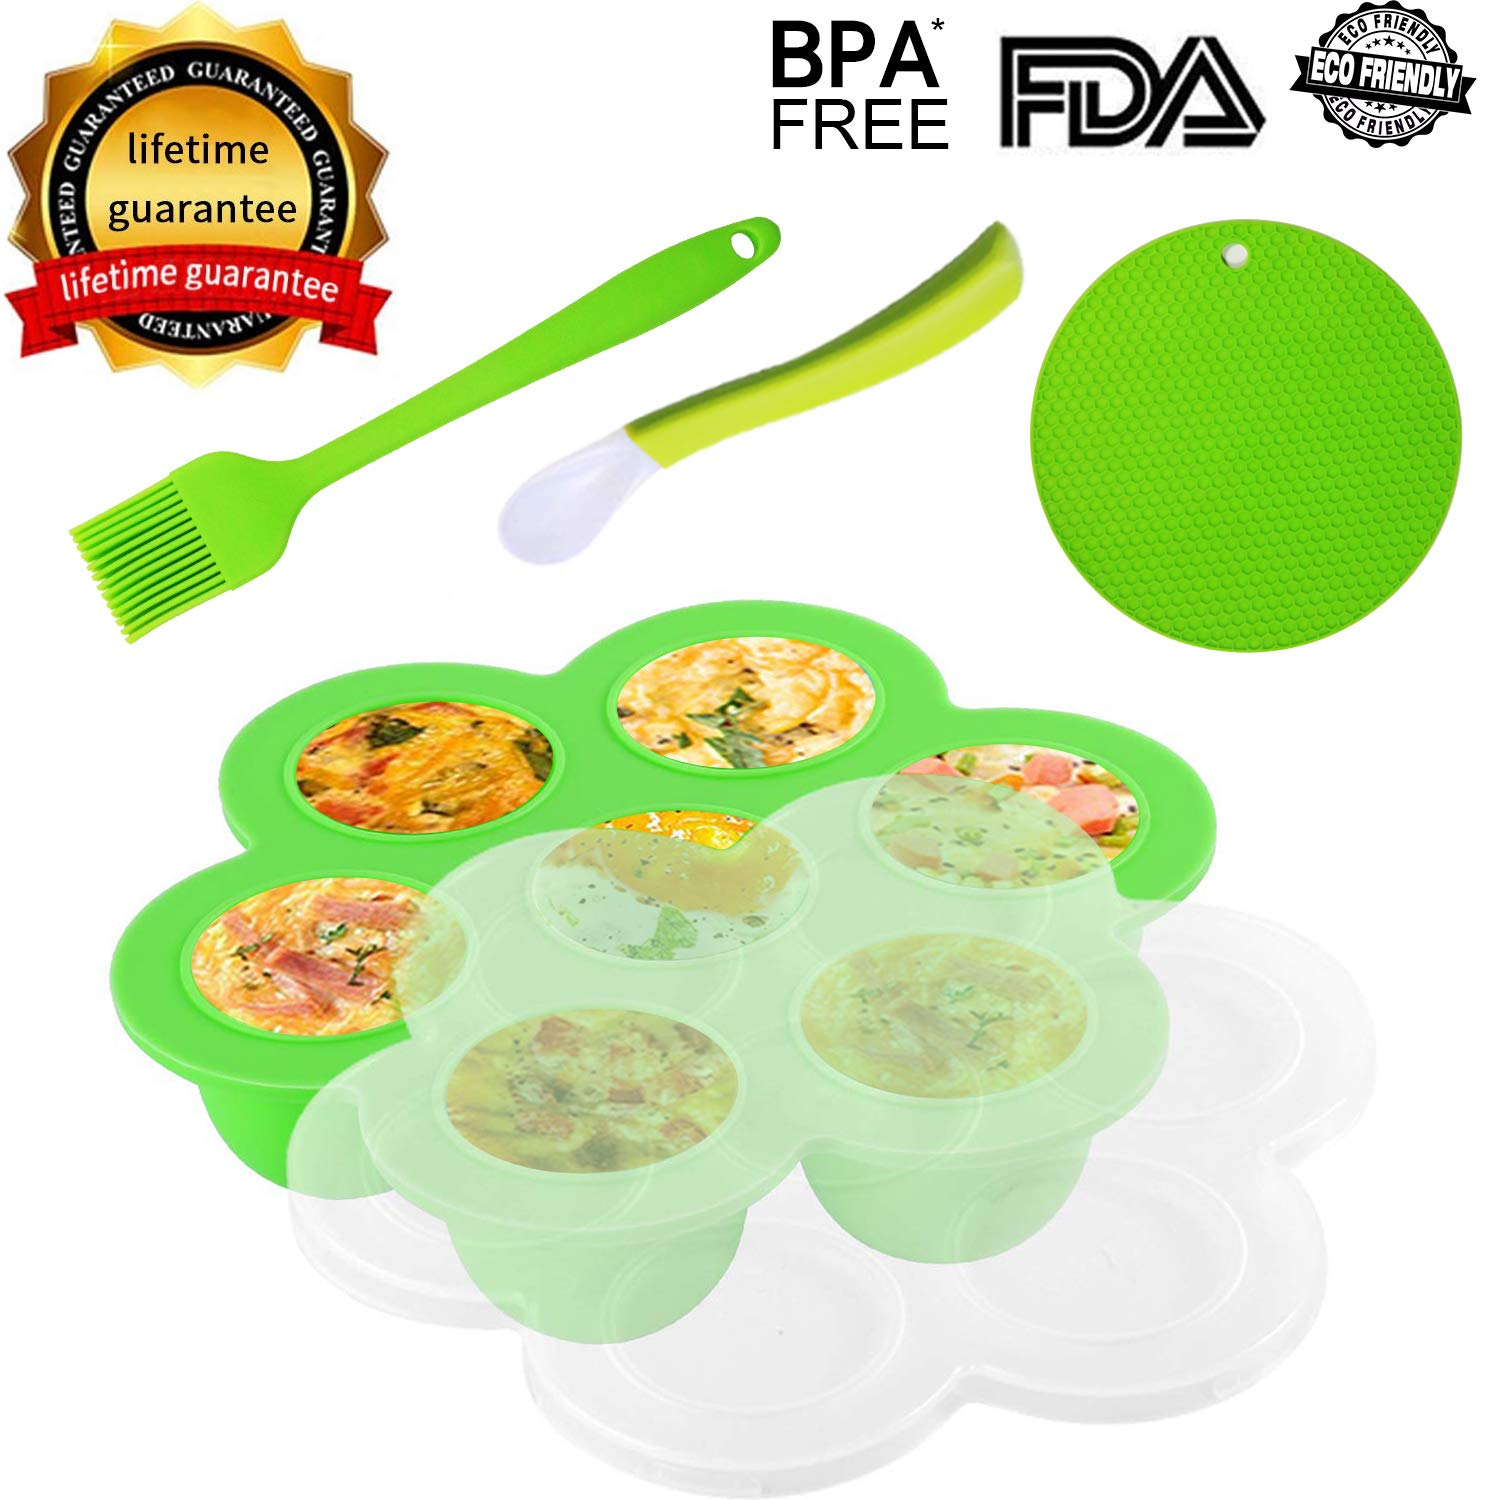 Soft Silicone Egg Bites Mold| Brush| Spoon| Holder for Instant Pot Accessories fit 5,6,8 qt Pressure Cooker,HENSUN Flexible Reusable Baby Storage Container Freezer Tray w/Lid| Sous Vide Egg Poacher